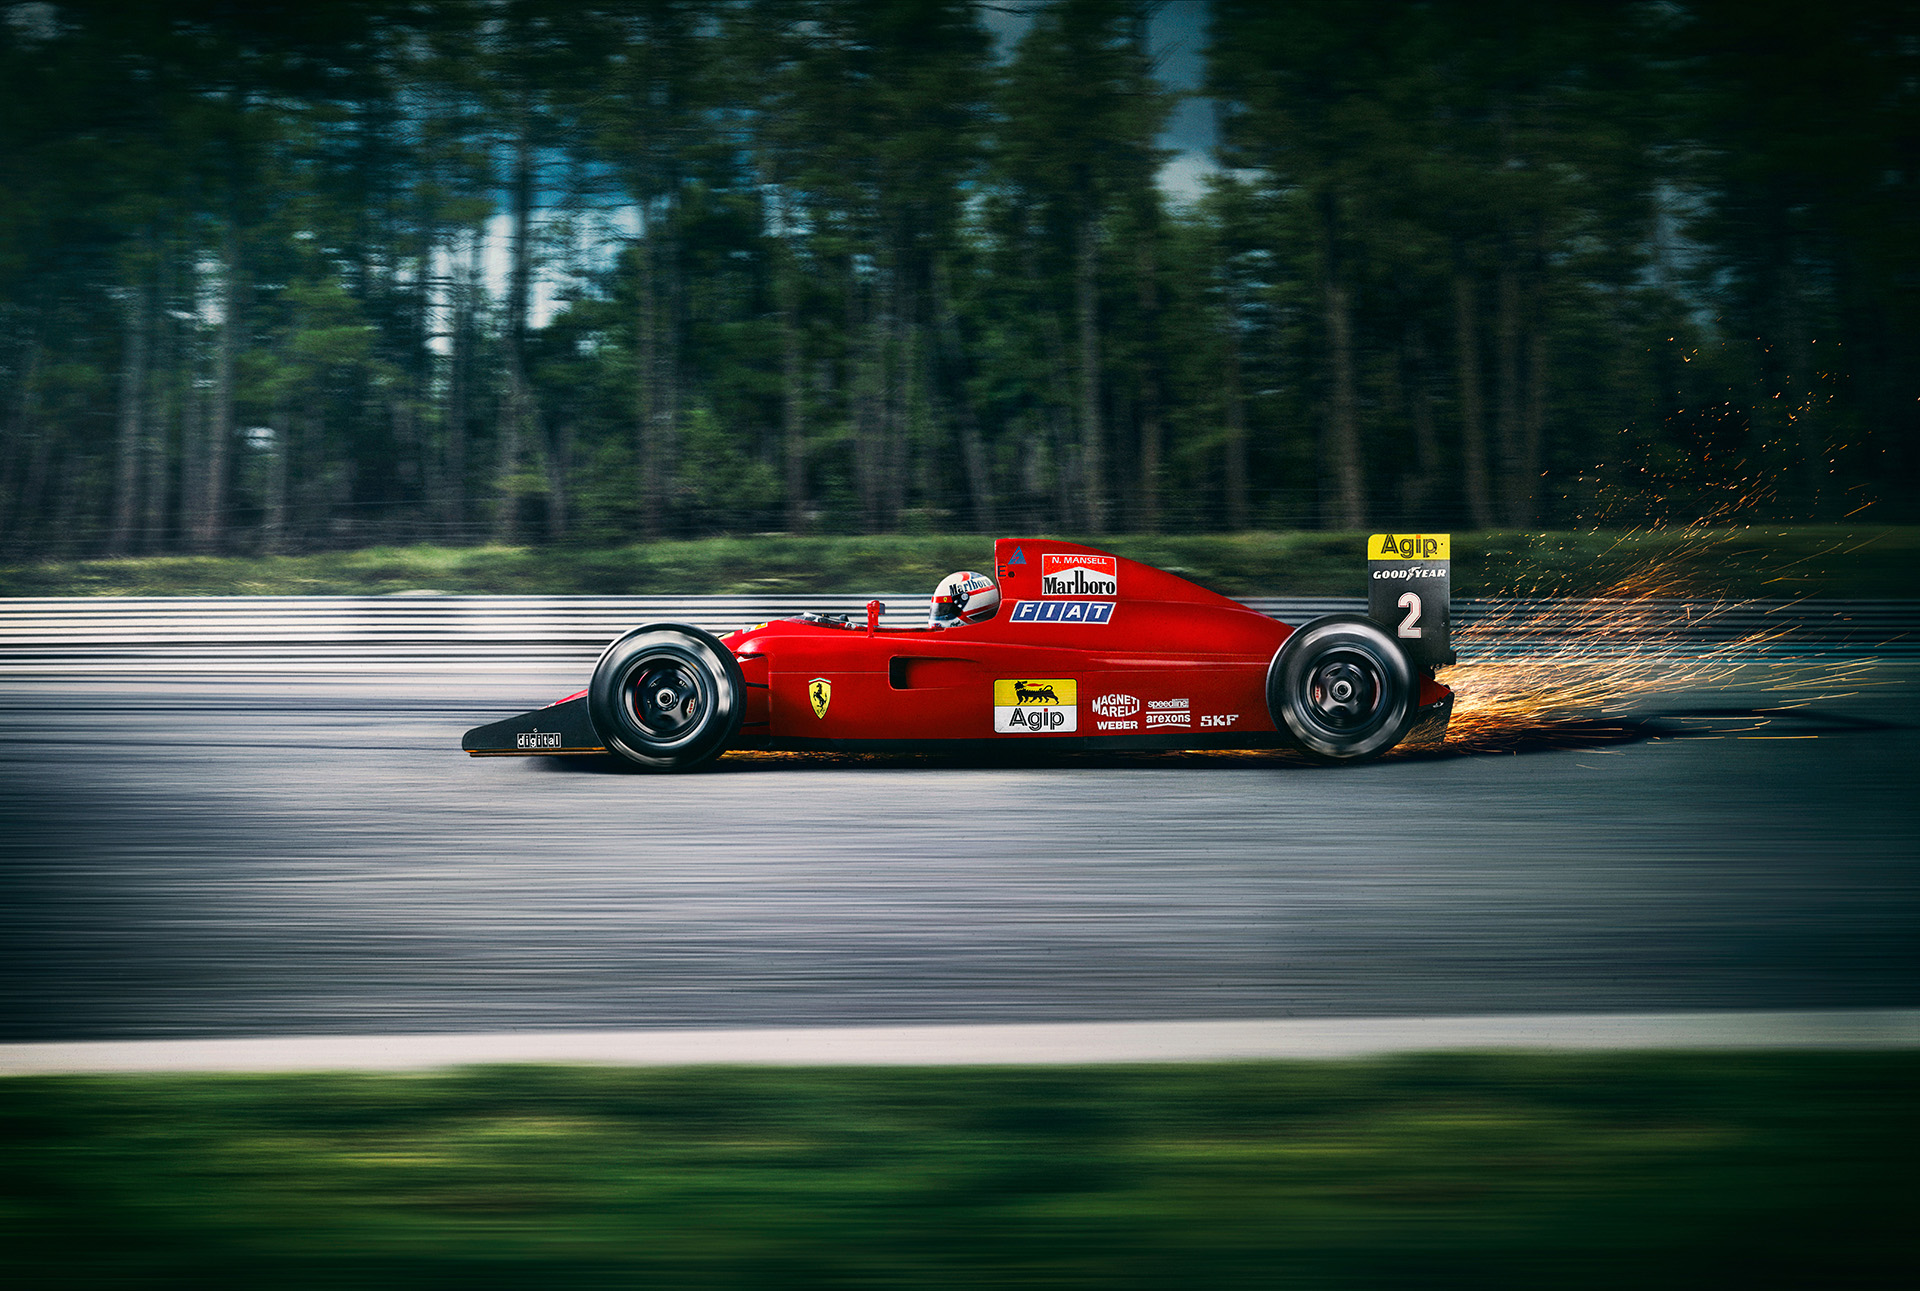 Ferrari F641 photographed by Commercial Photographer